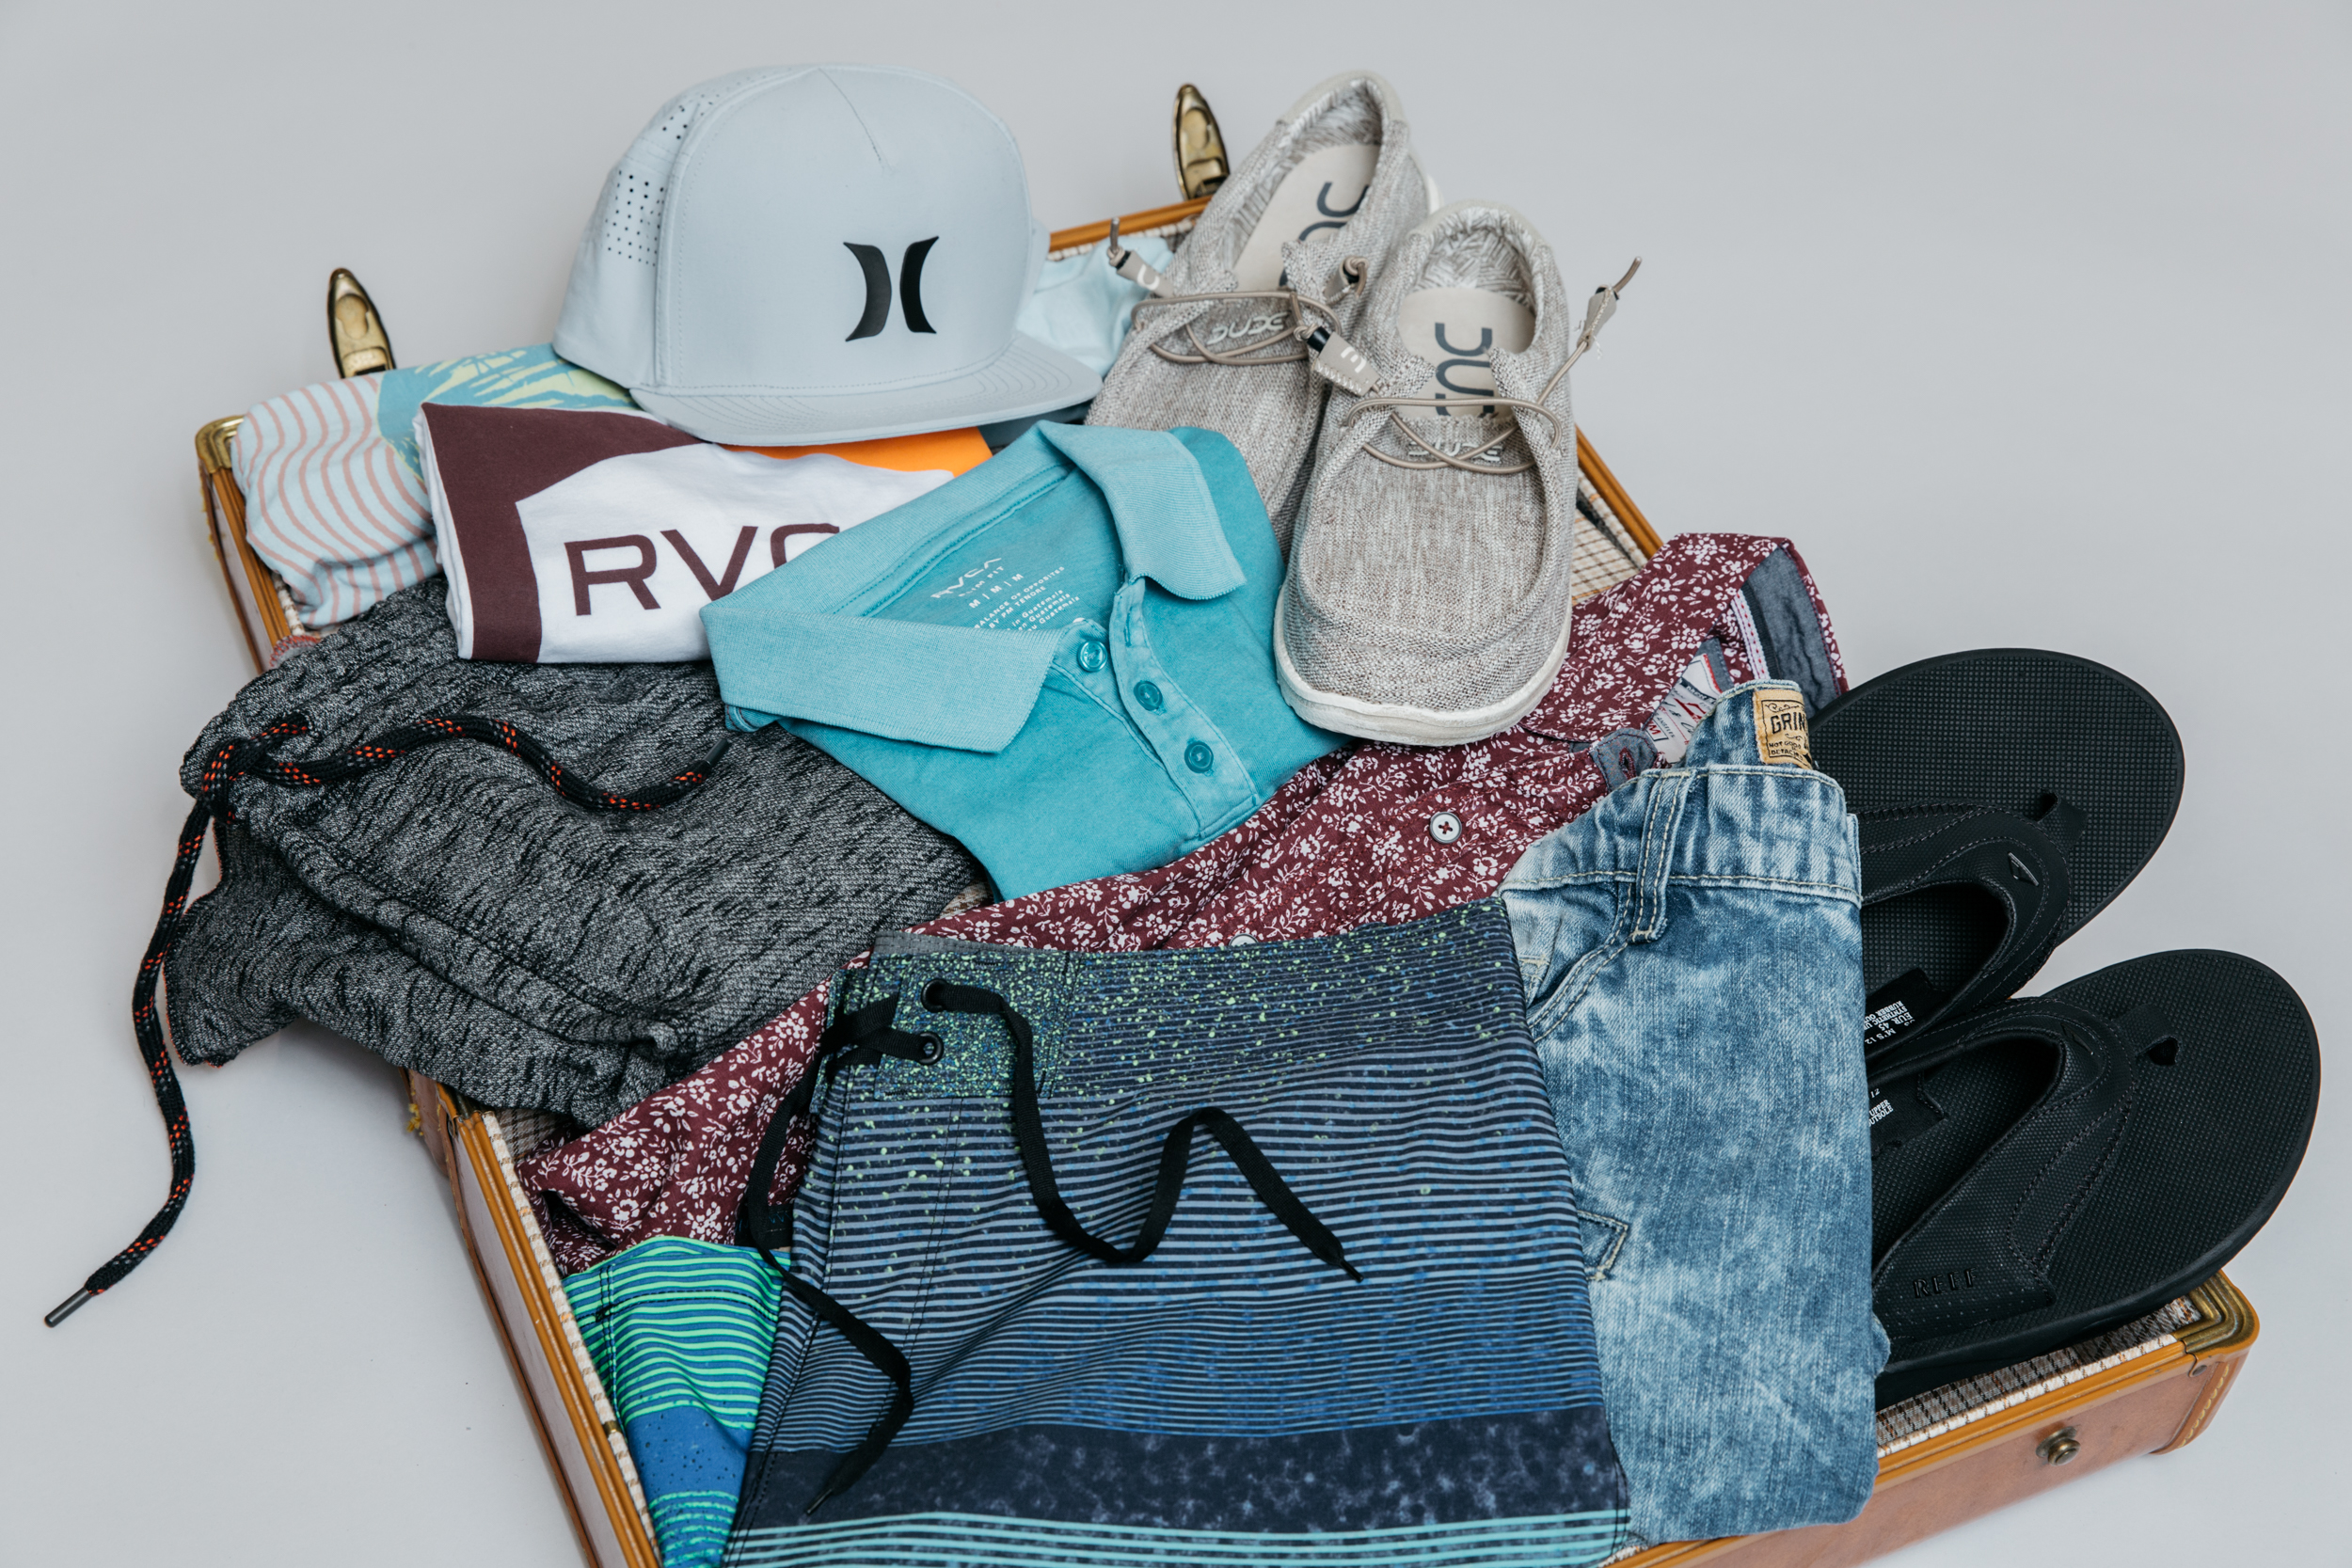 Vintage suitcase packed, with men's clothing including Hurley boardshorts and a trucker hat, a RVCA tank top, and Hey Dude casual shoes, for a road trip with friends.